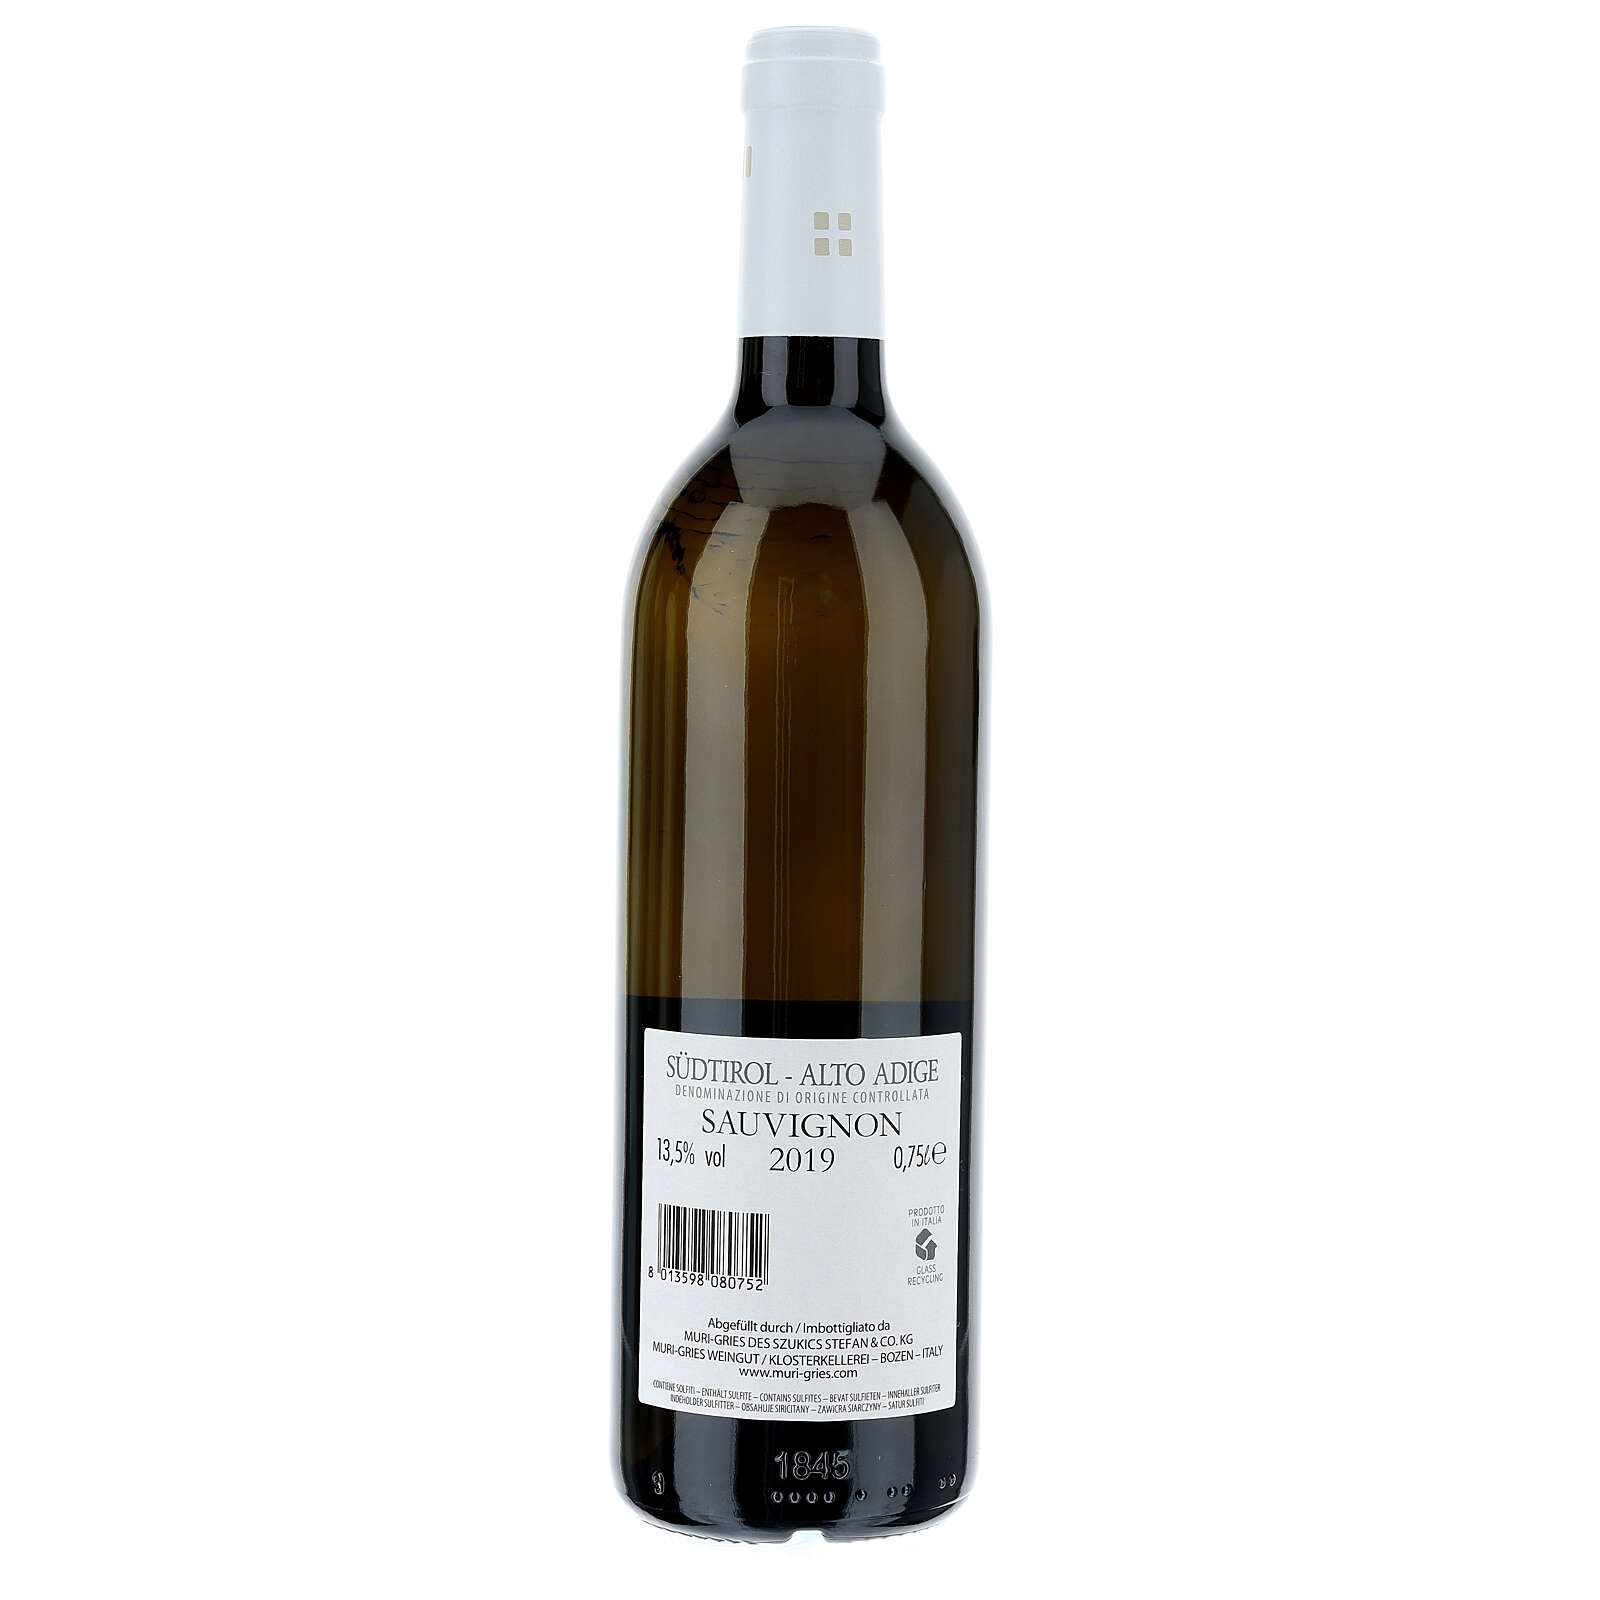 Sauvignon DOC white wine Muri Gries Abbey 2019 3